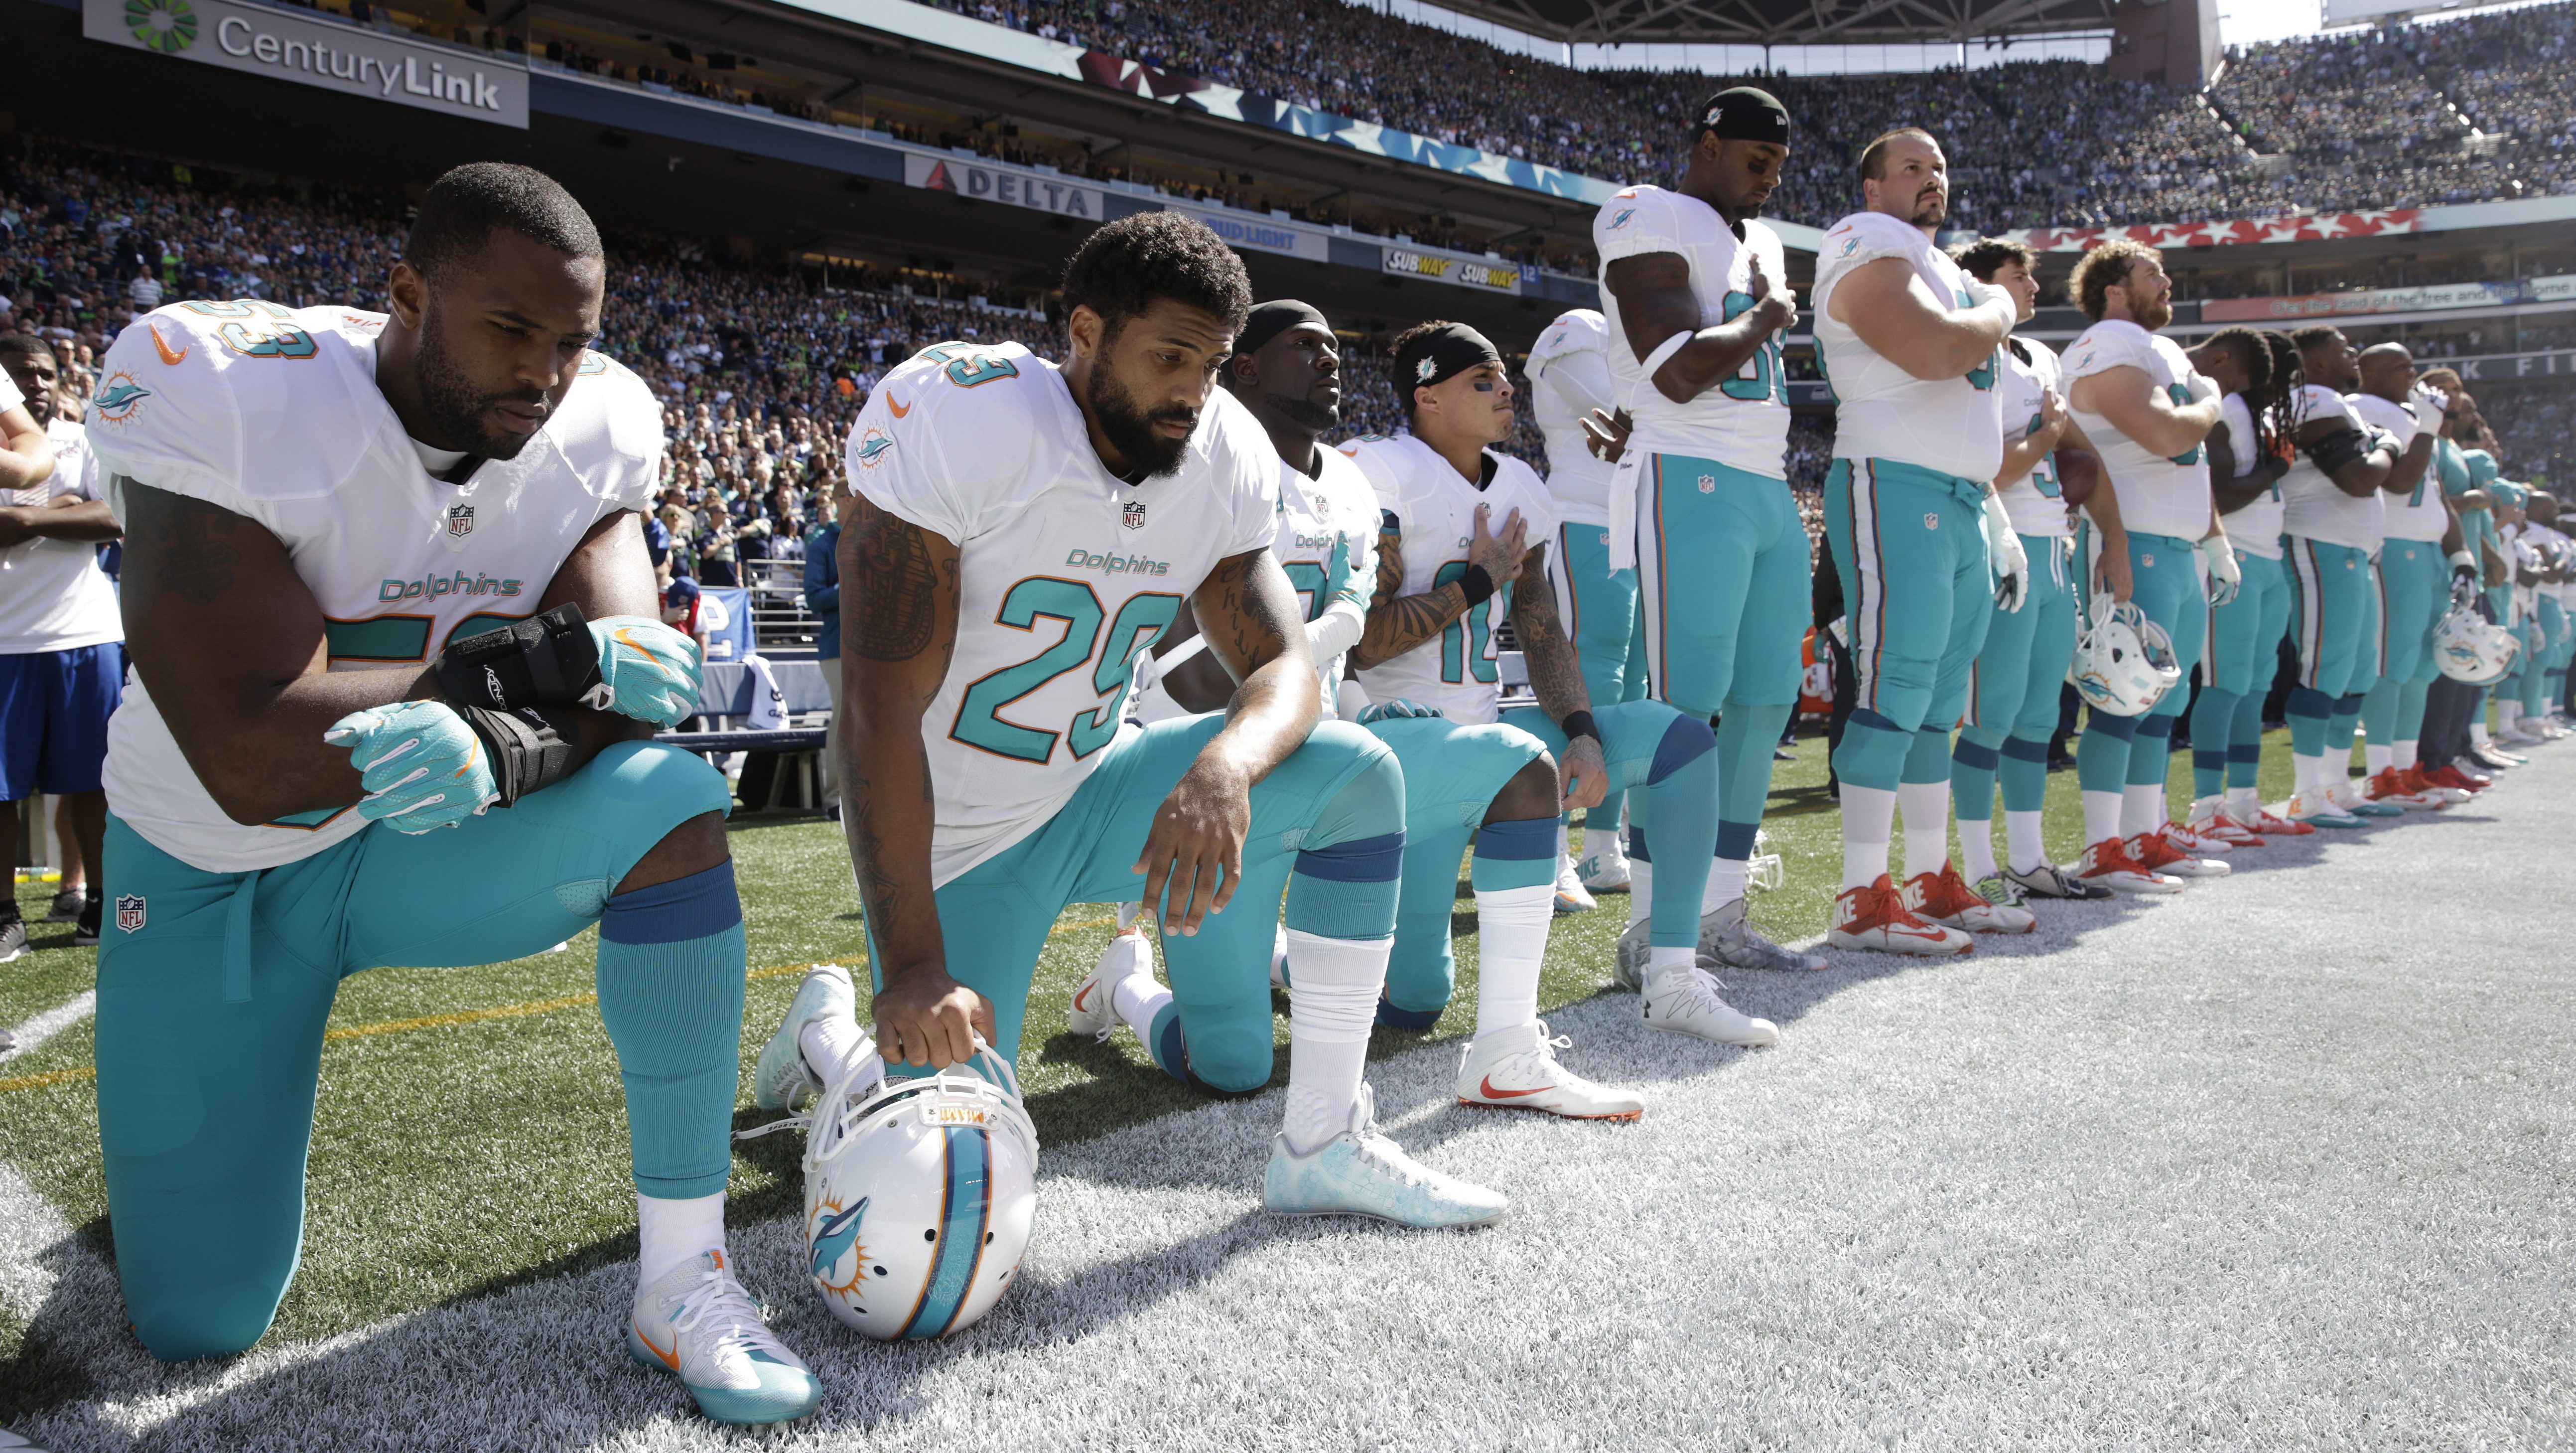 Miami Dolphins' players kneel during the singing of the national anthem